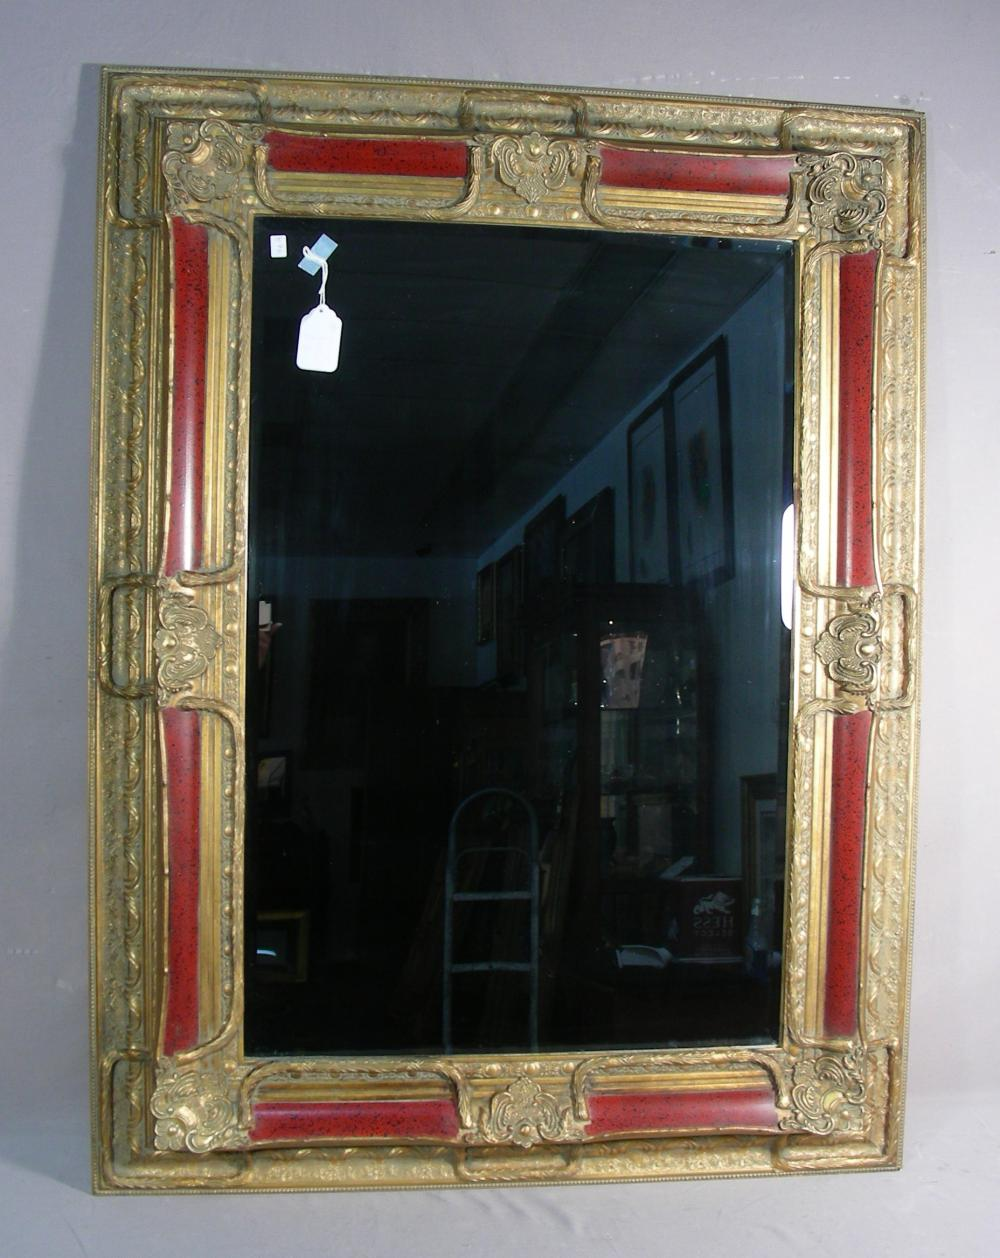 HAND PAI NTED TWO TONE BEVELED GLASS MIRROR